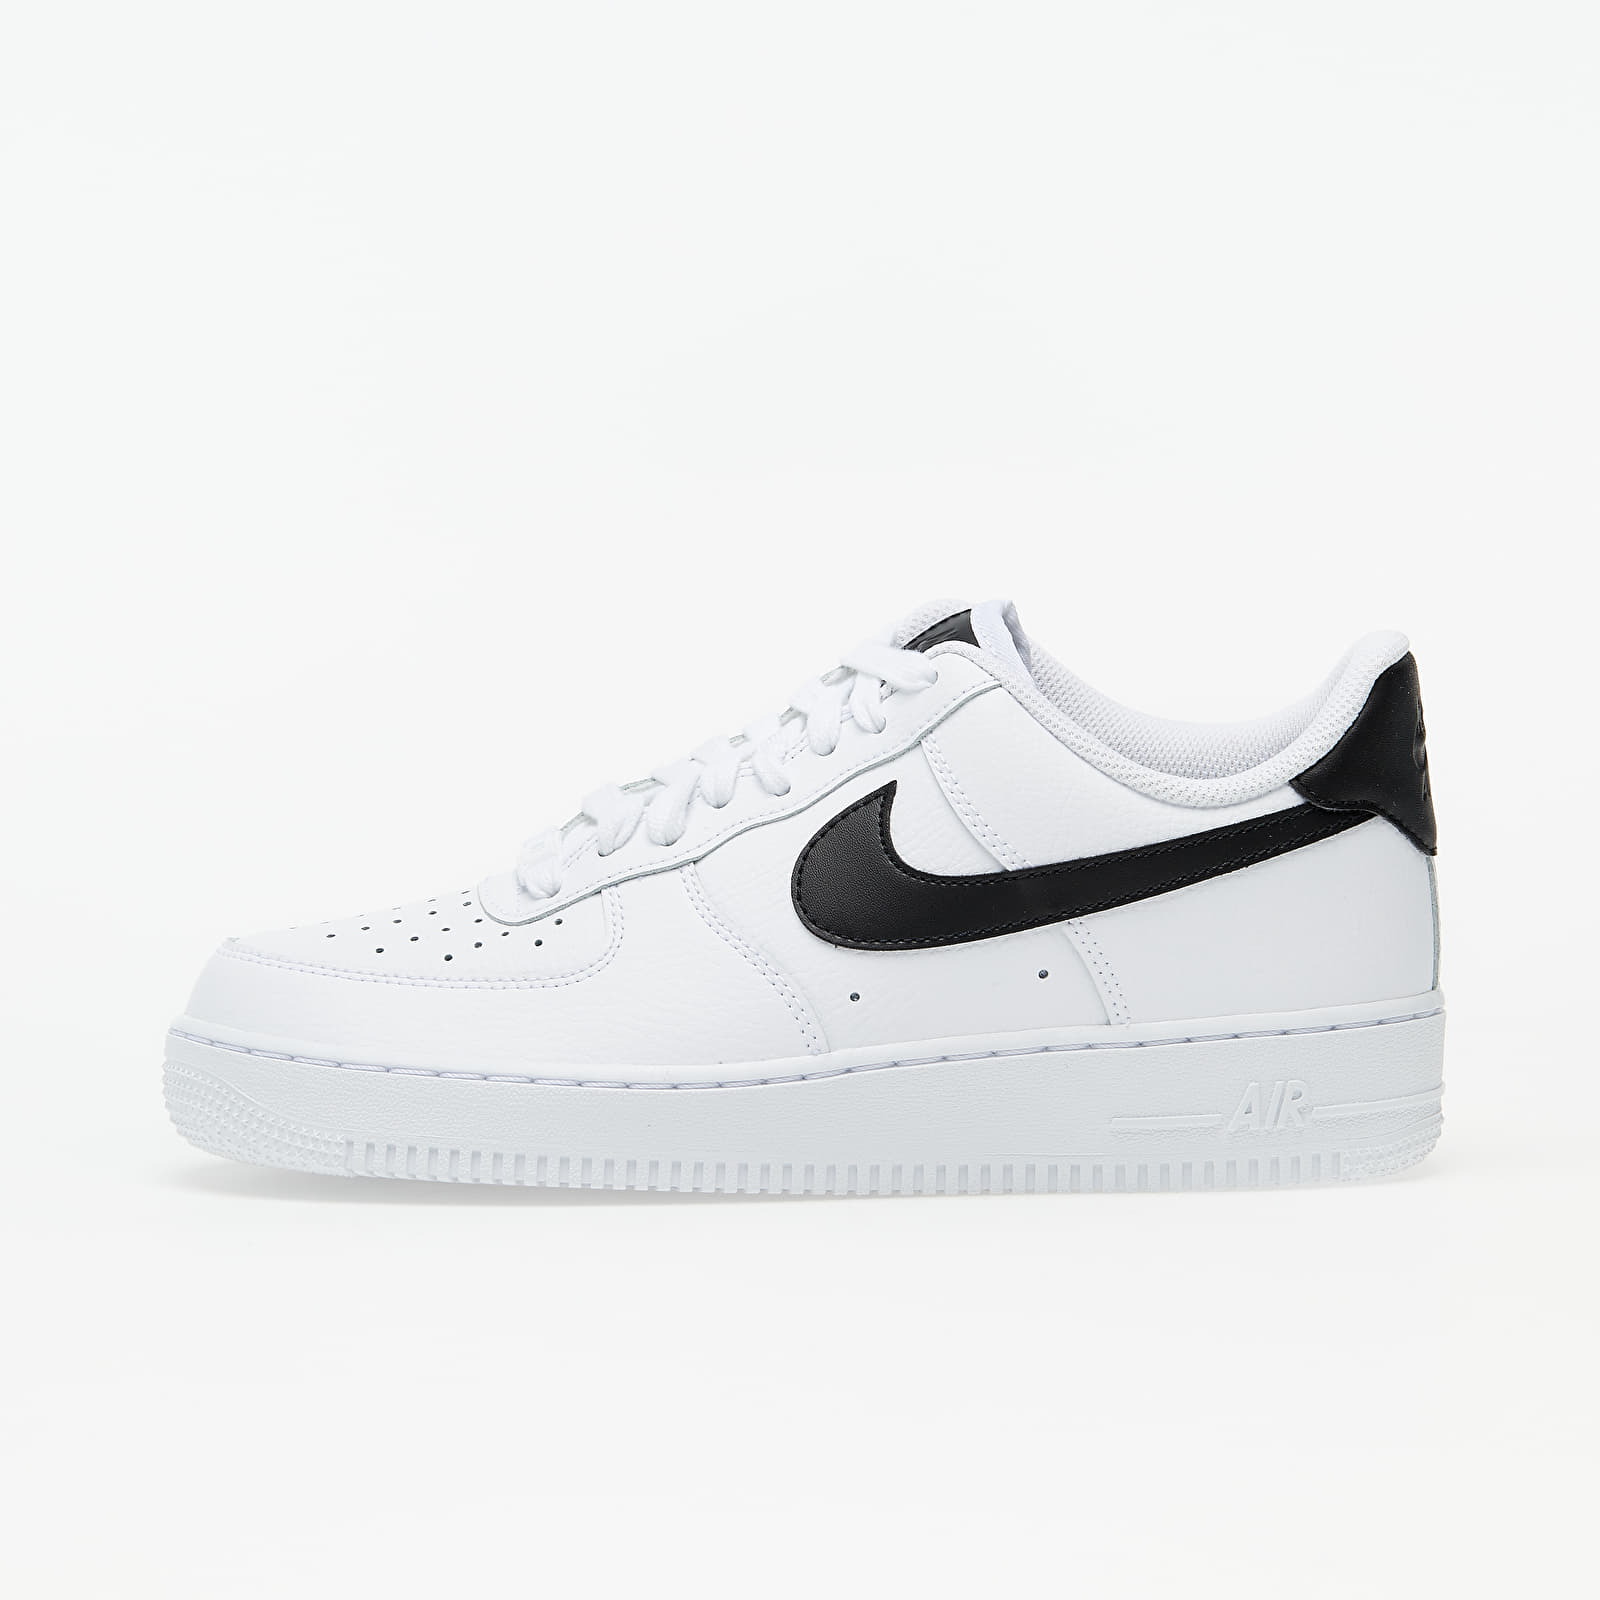 Nike WMNS Air Force 1 '07 White/ White-Black EUR 36